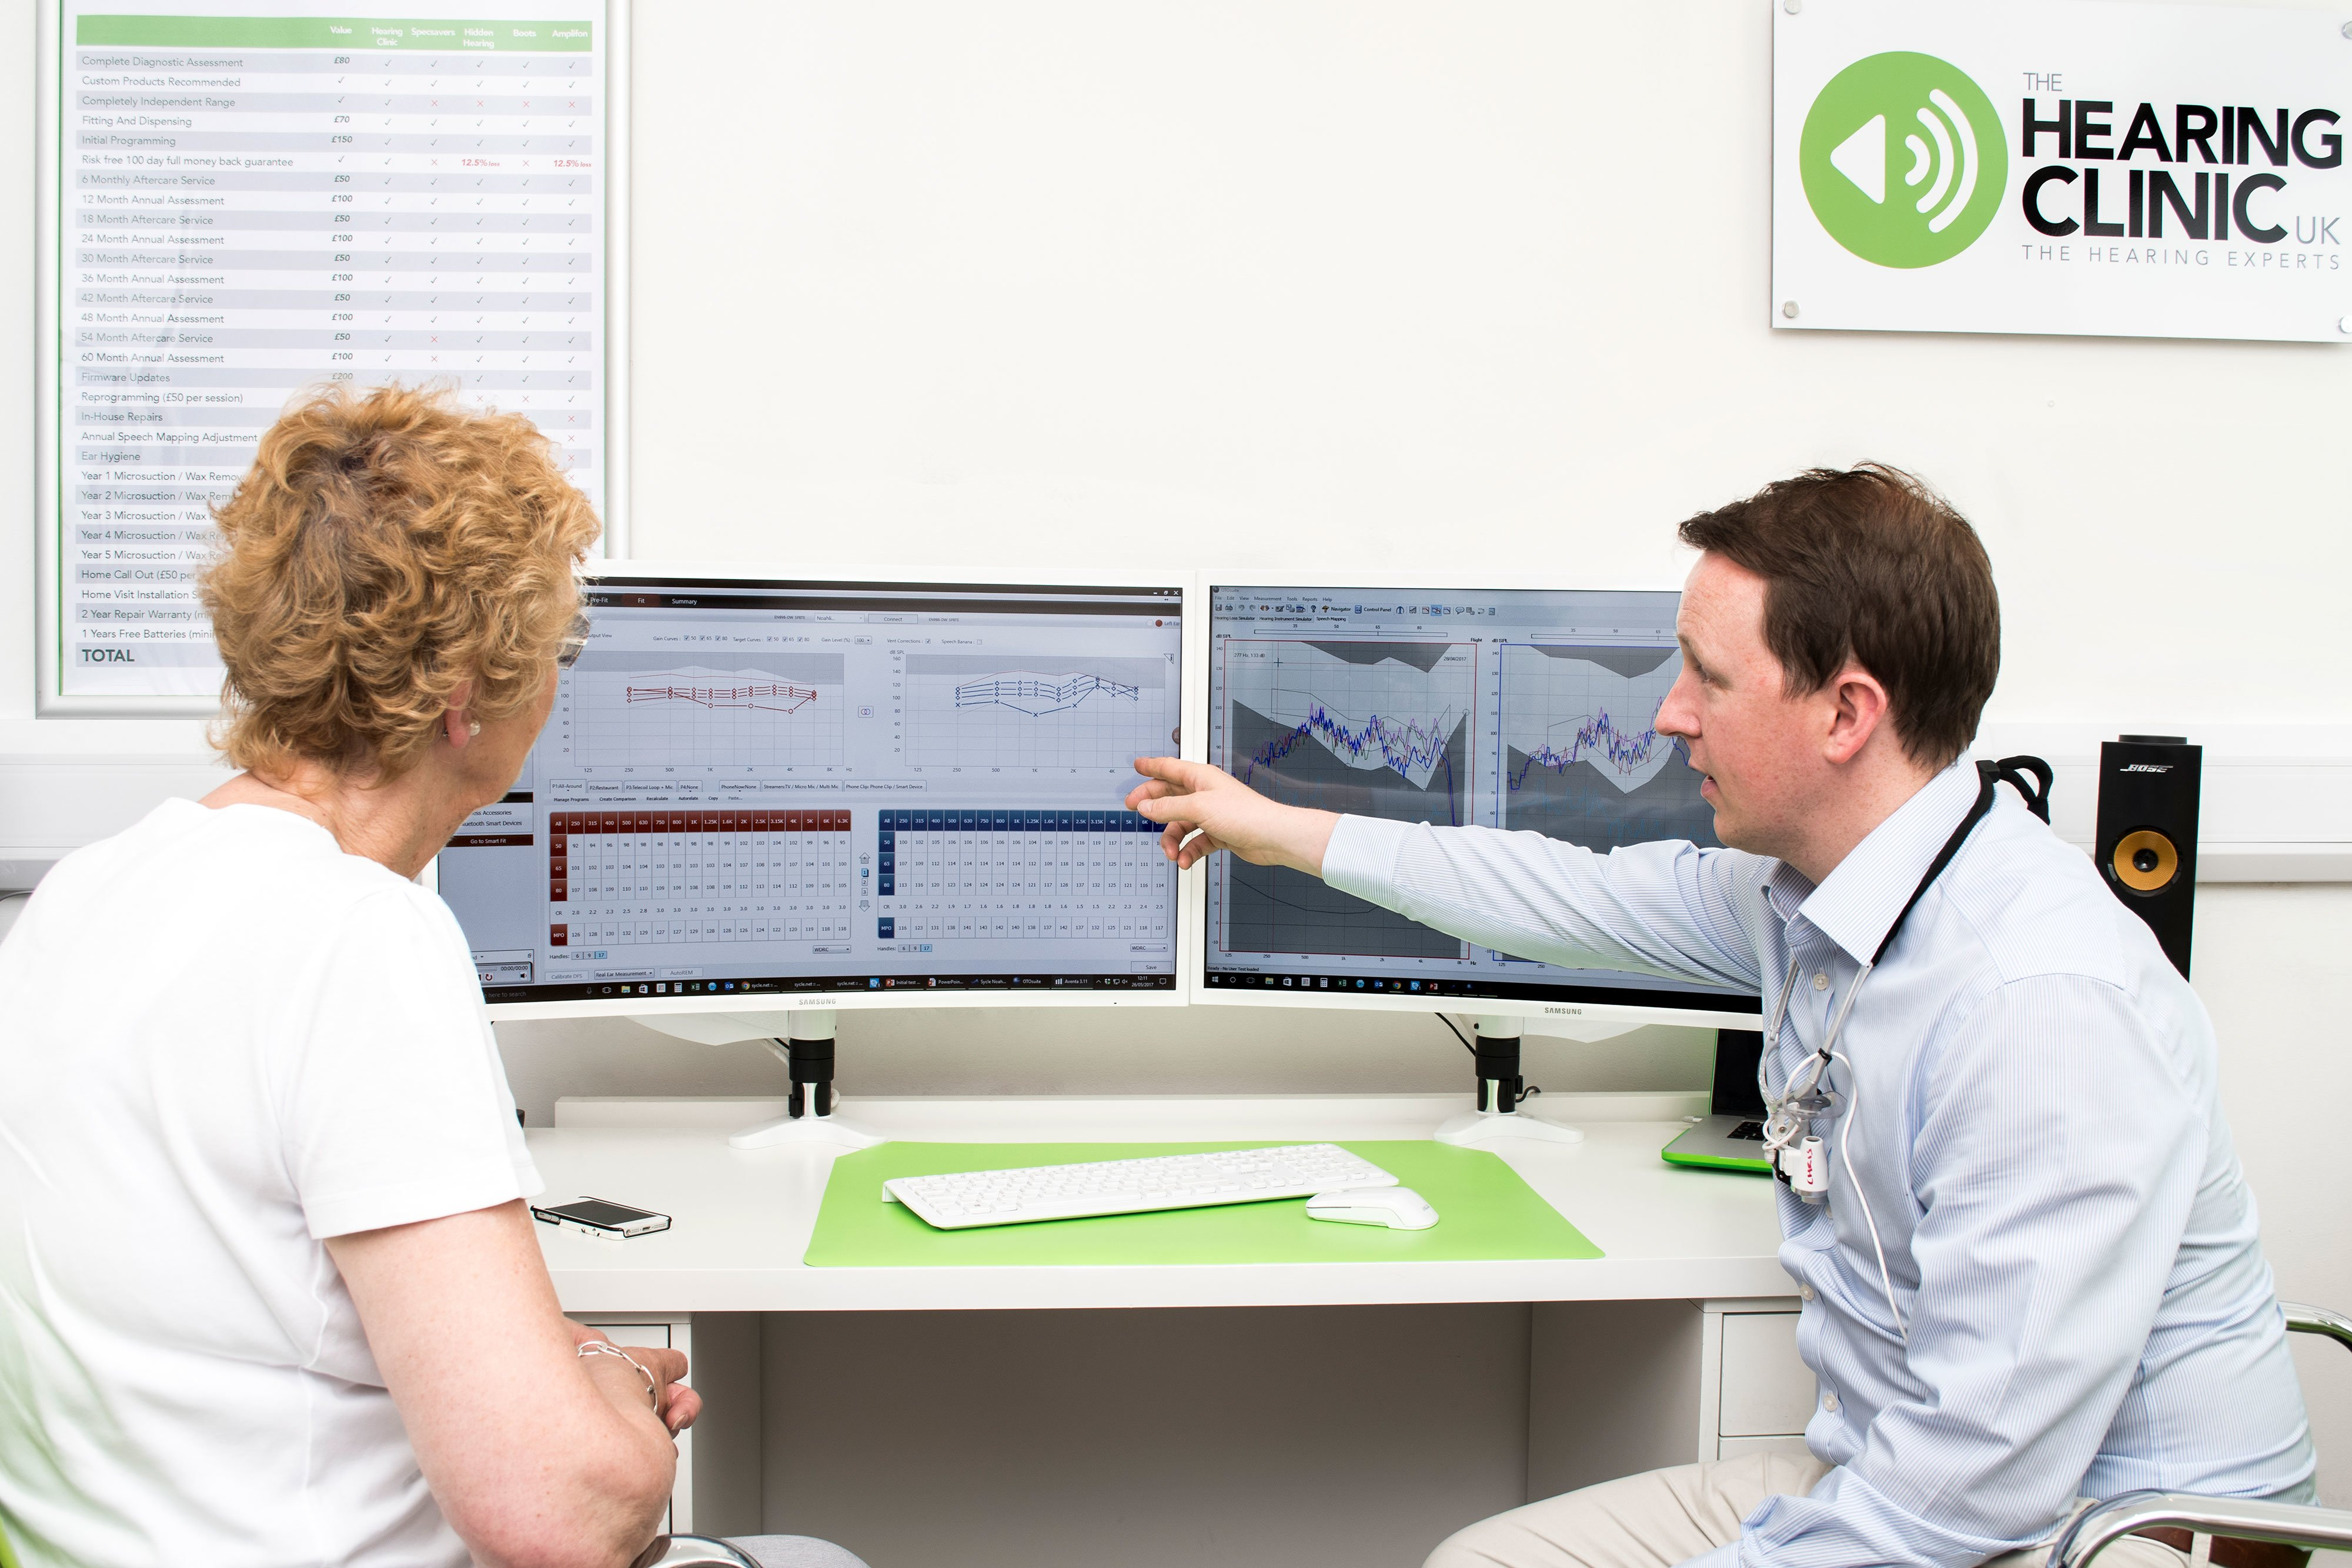 How Can The Hearing Clinic UK Help You?